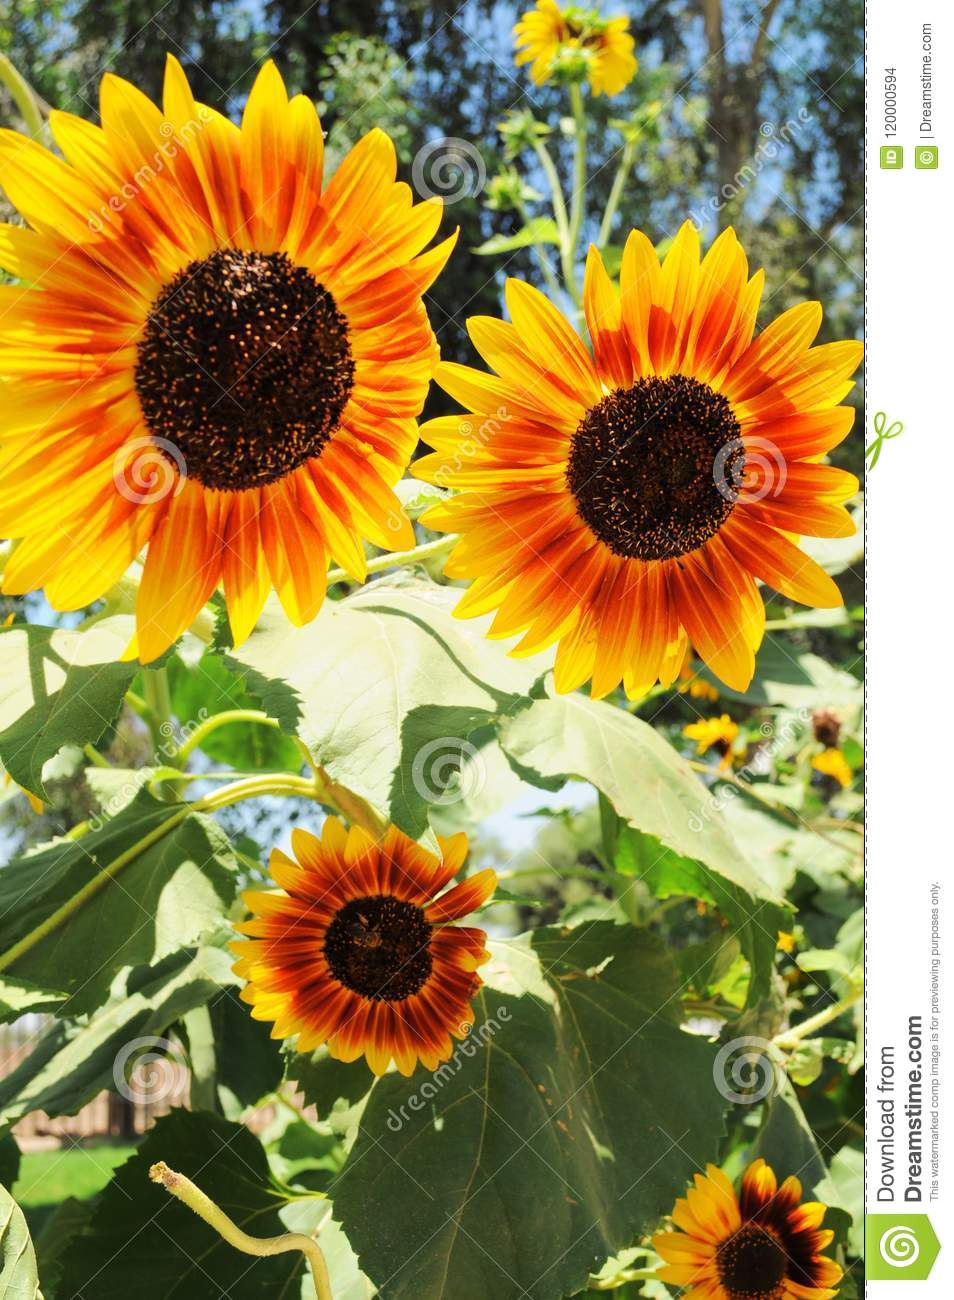 Big contrasted sunflowers background, beautiful natural flowers so colorful standing out in the sun